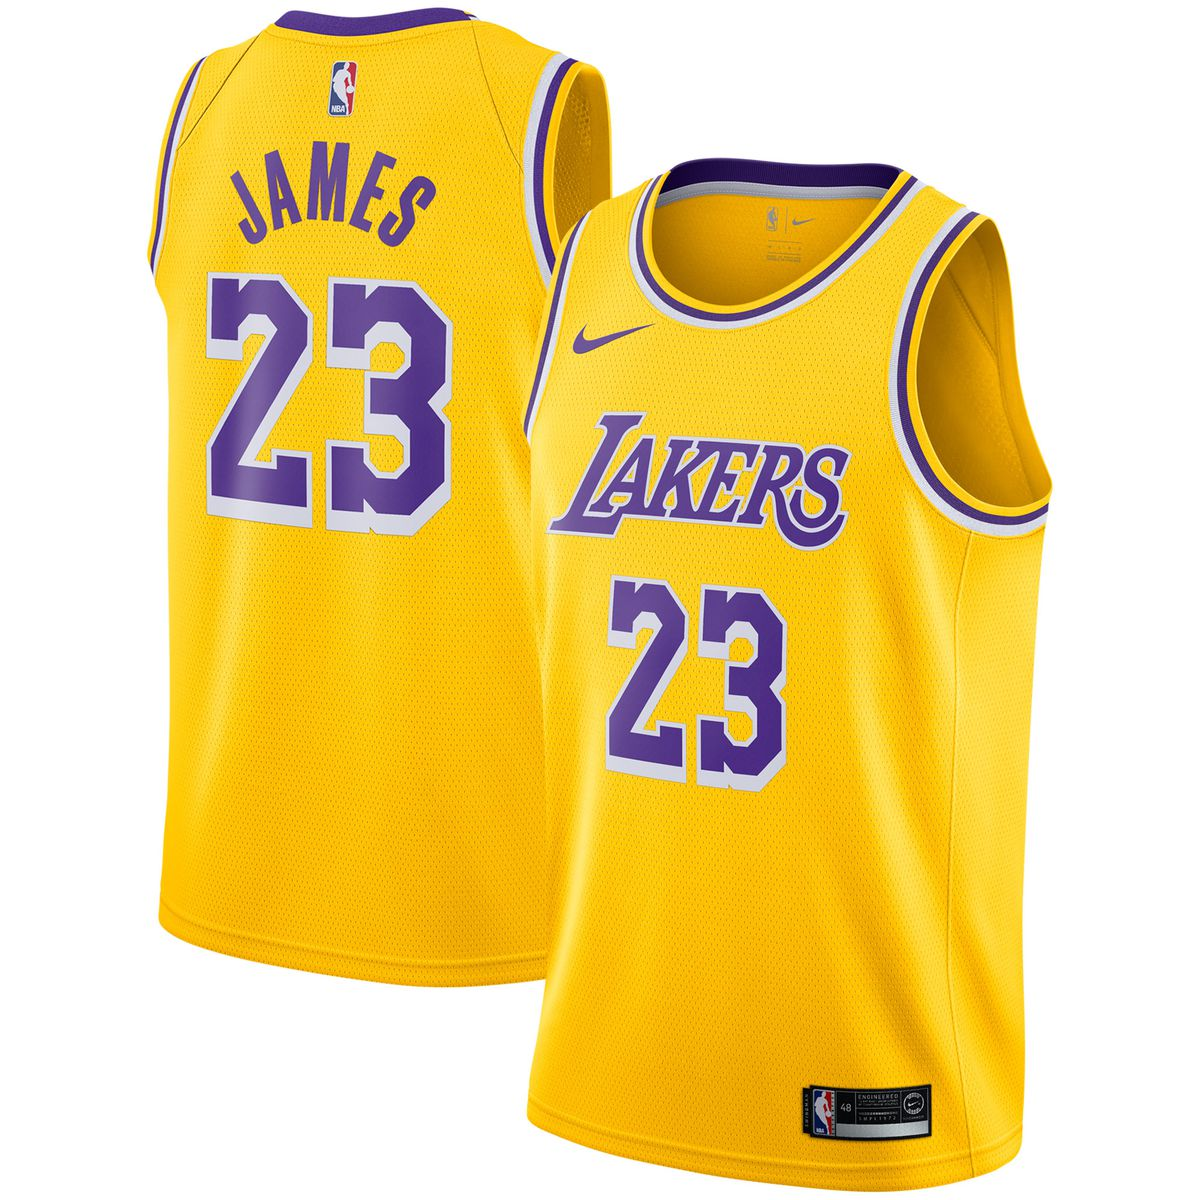 innovative design 28a6a d24bf Where you can get new Los Angeles Lakers and LeBron James ...